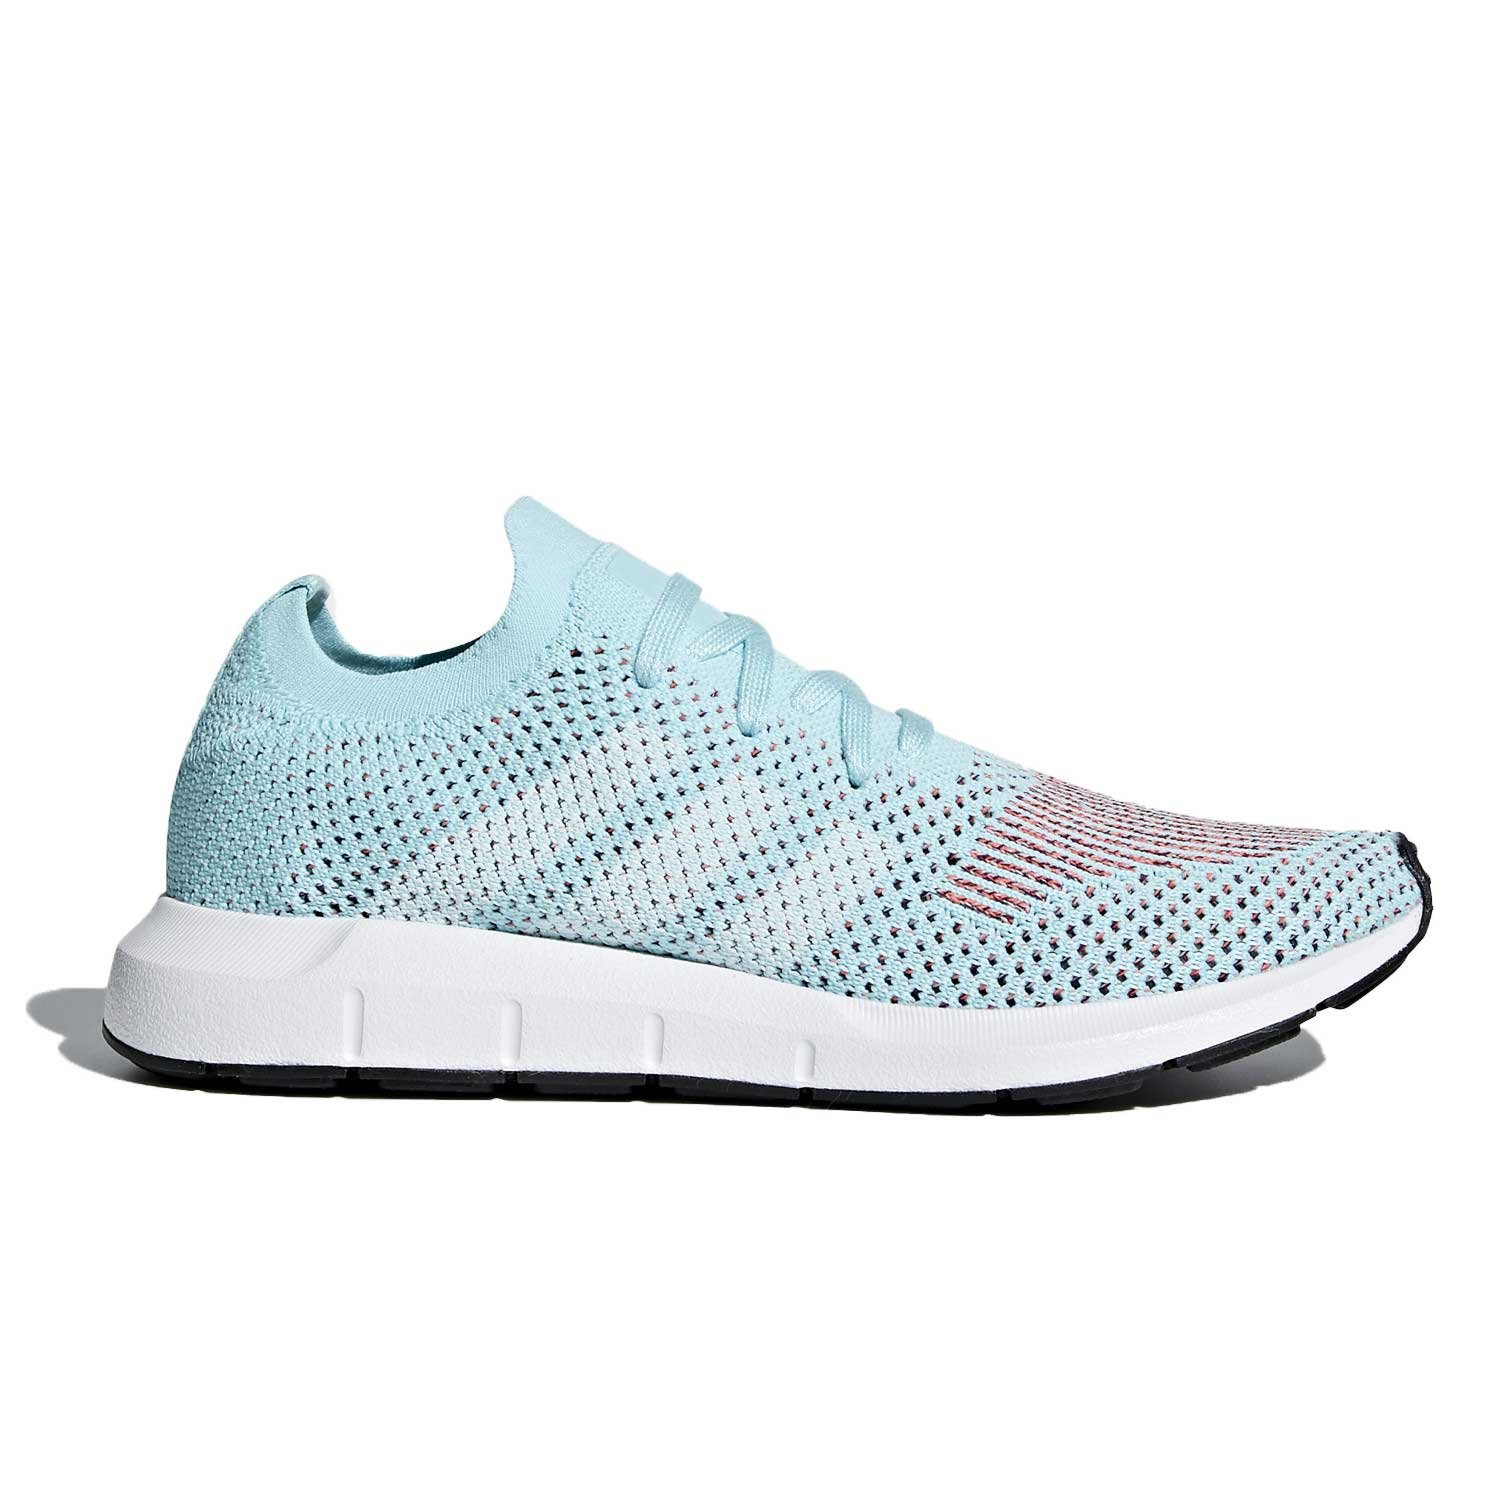 adidas Womens Swift Run Primeknit Casual Sneakers,